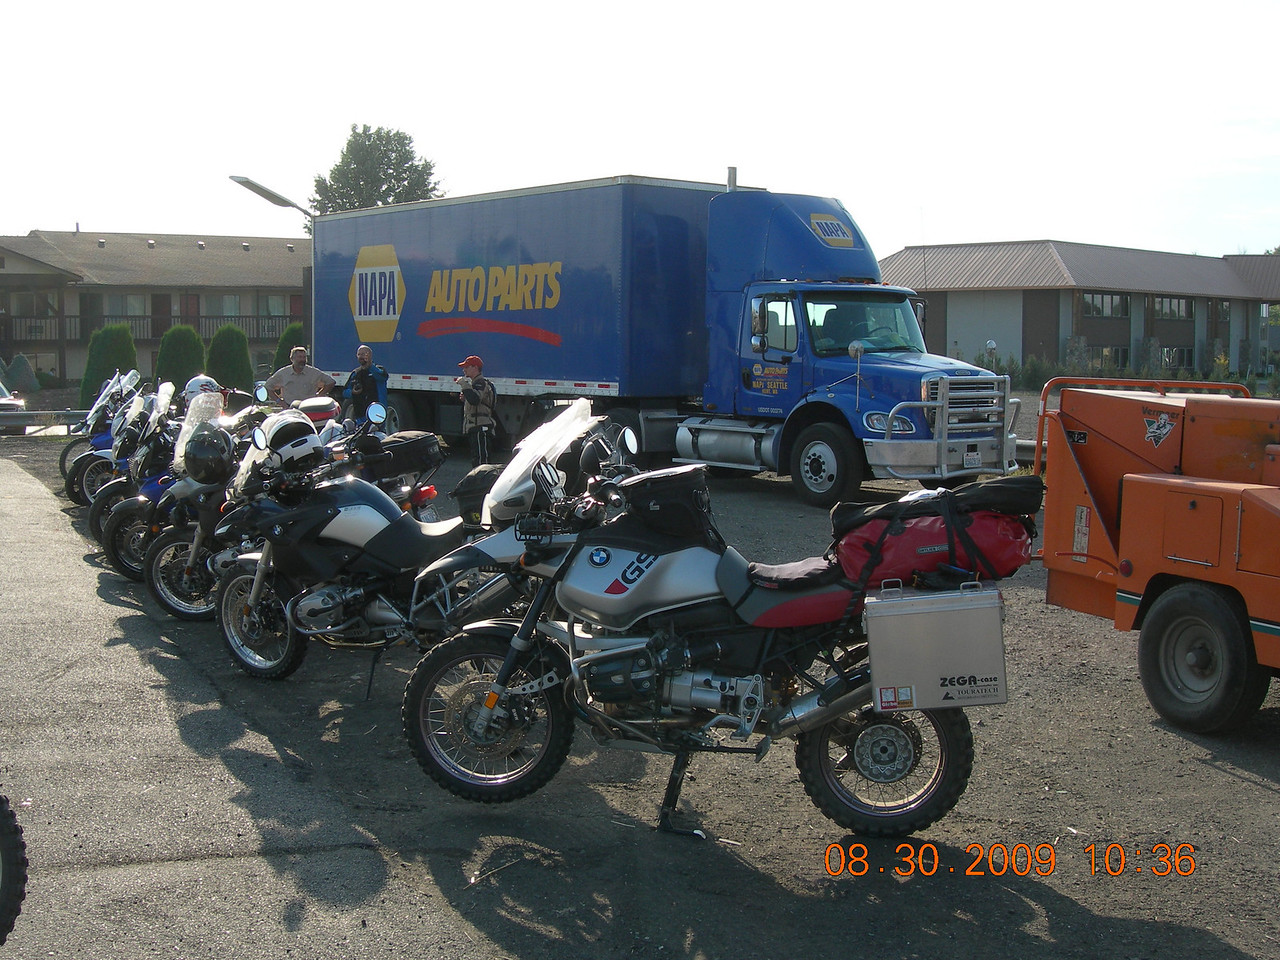 The meeting poing for Day 3 at the Ellensburg Chevron off I-90.  Bikes starting to trickle in...